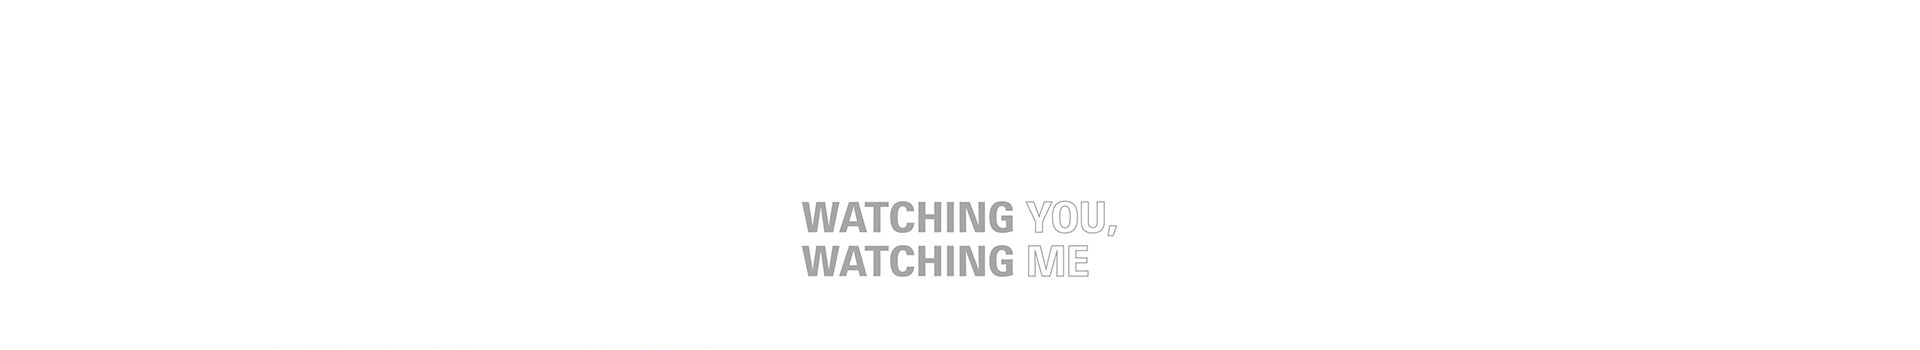 WATCHING YOU, WATCHING ME